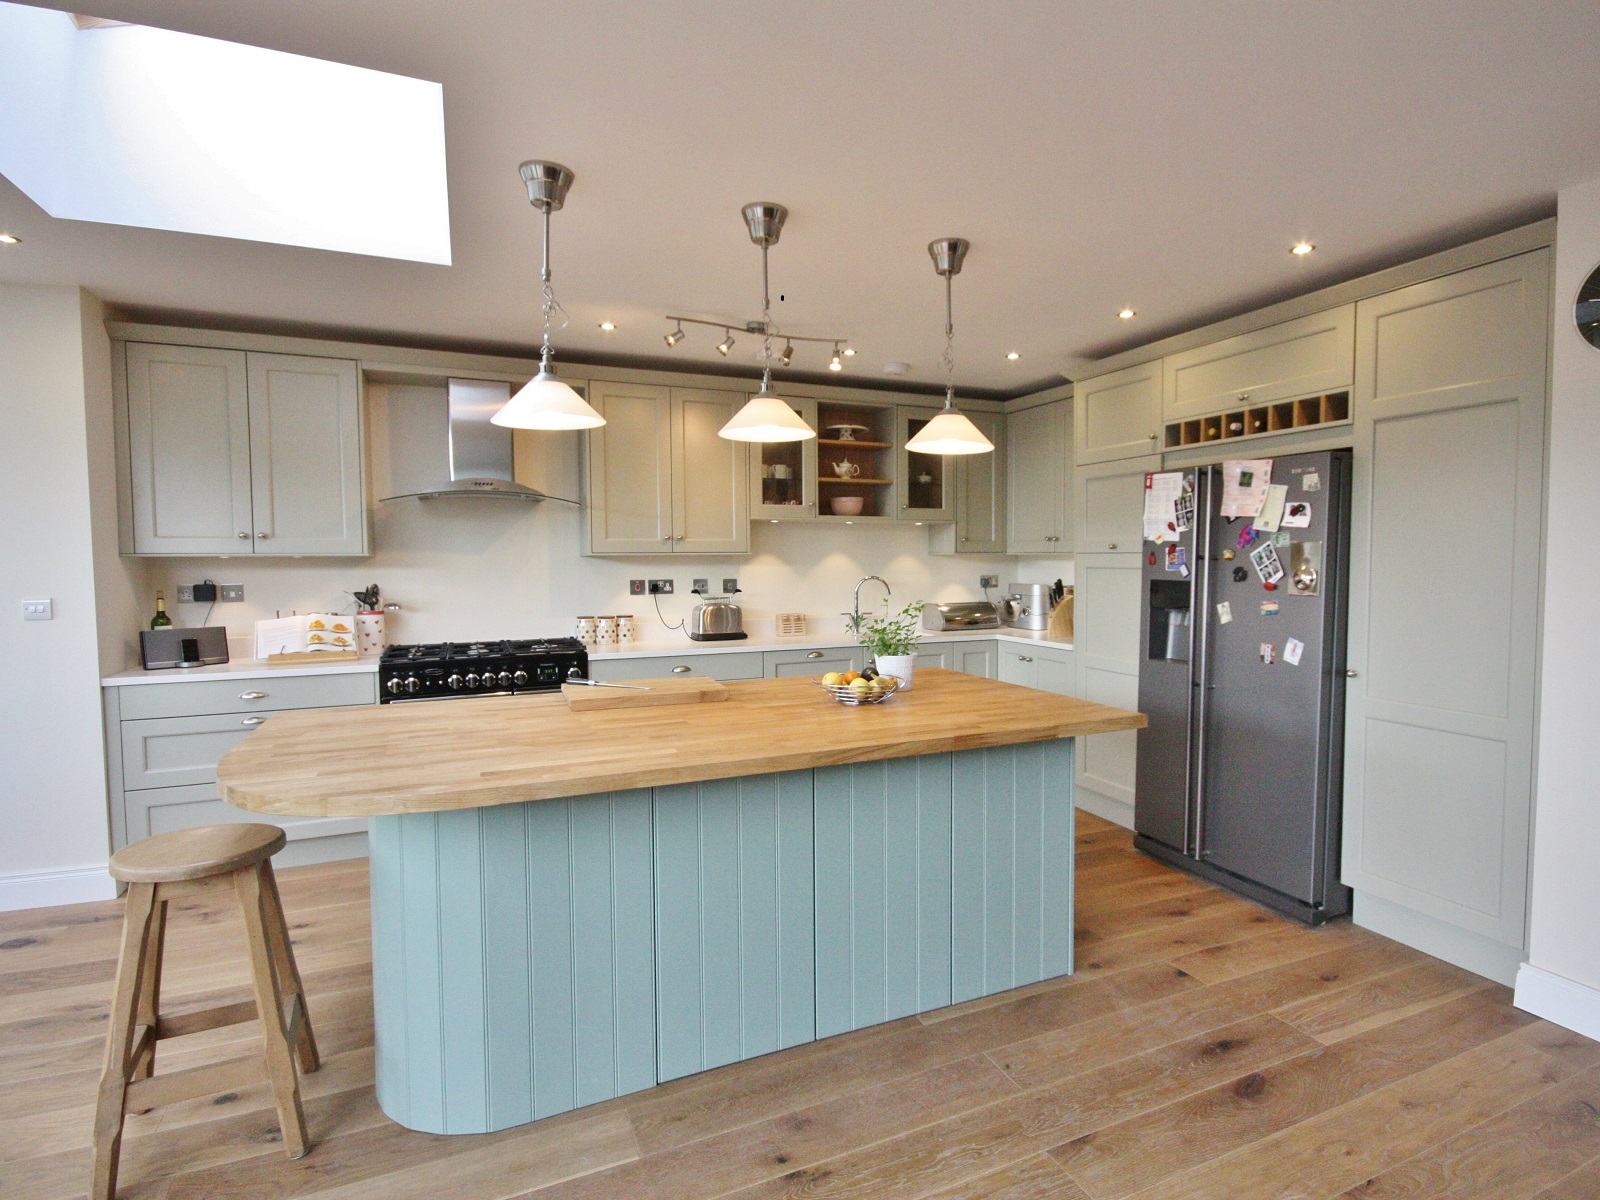 Modern Country Style Farrow And Ball Hardwick White For The Ultimate Modern Country Kitchen